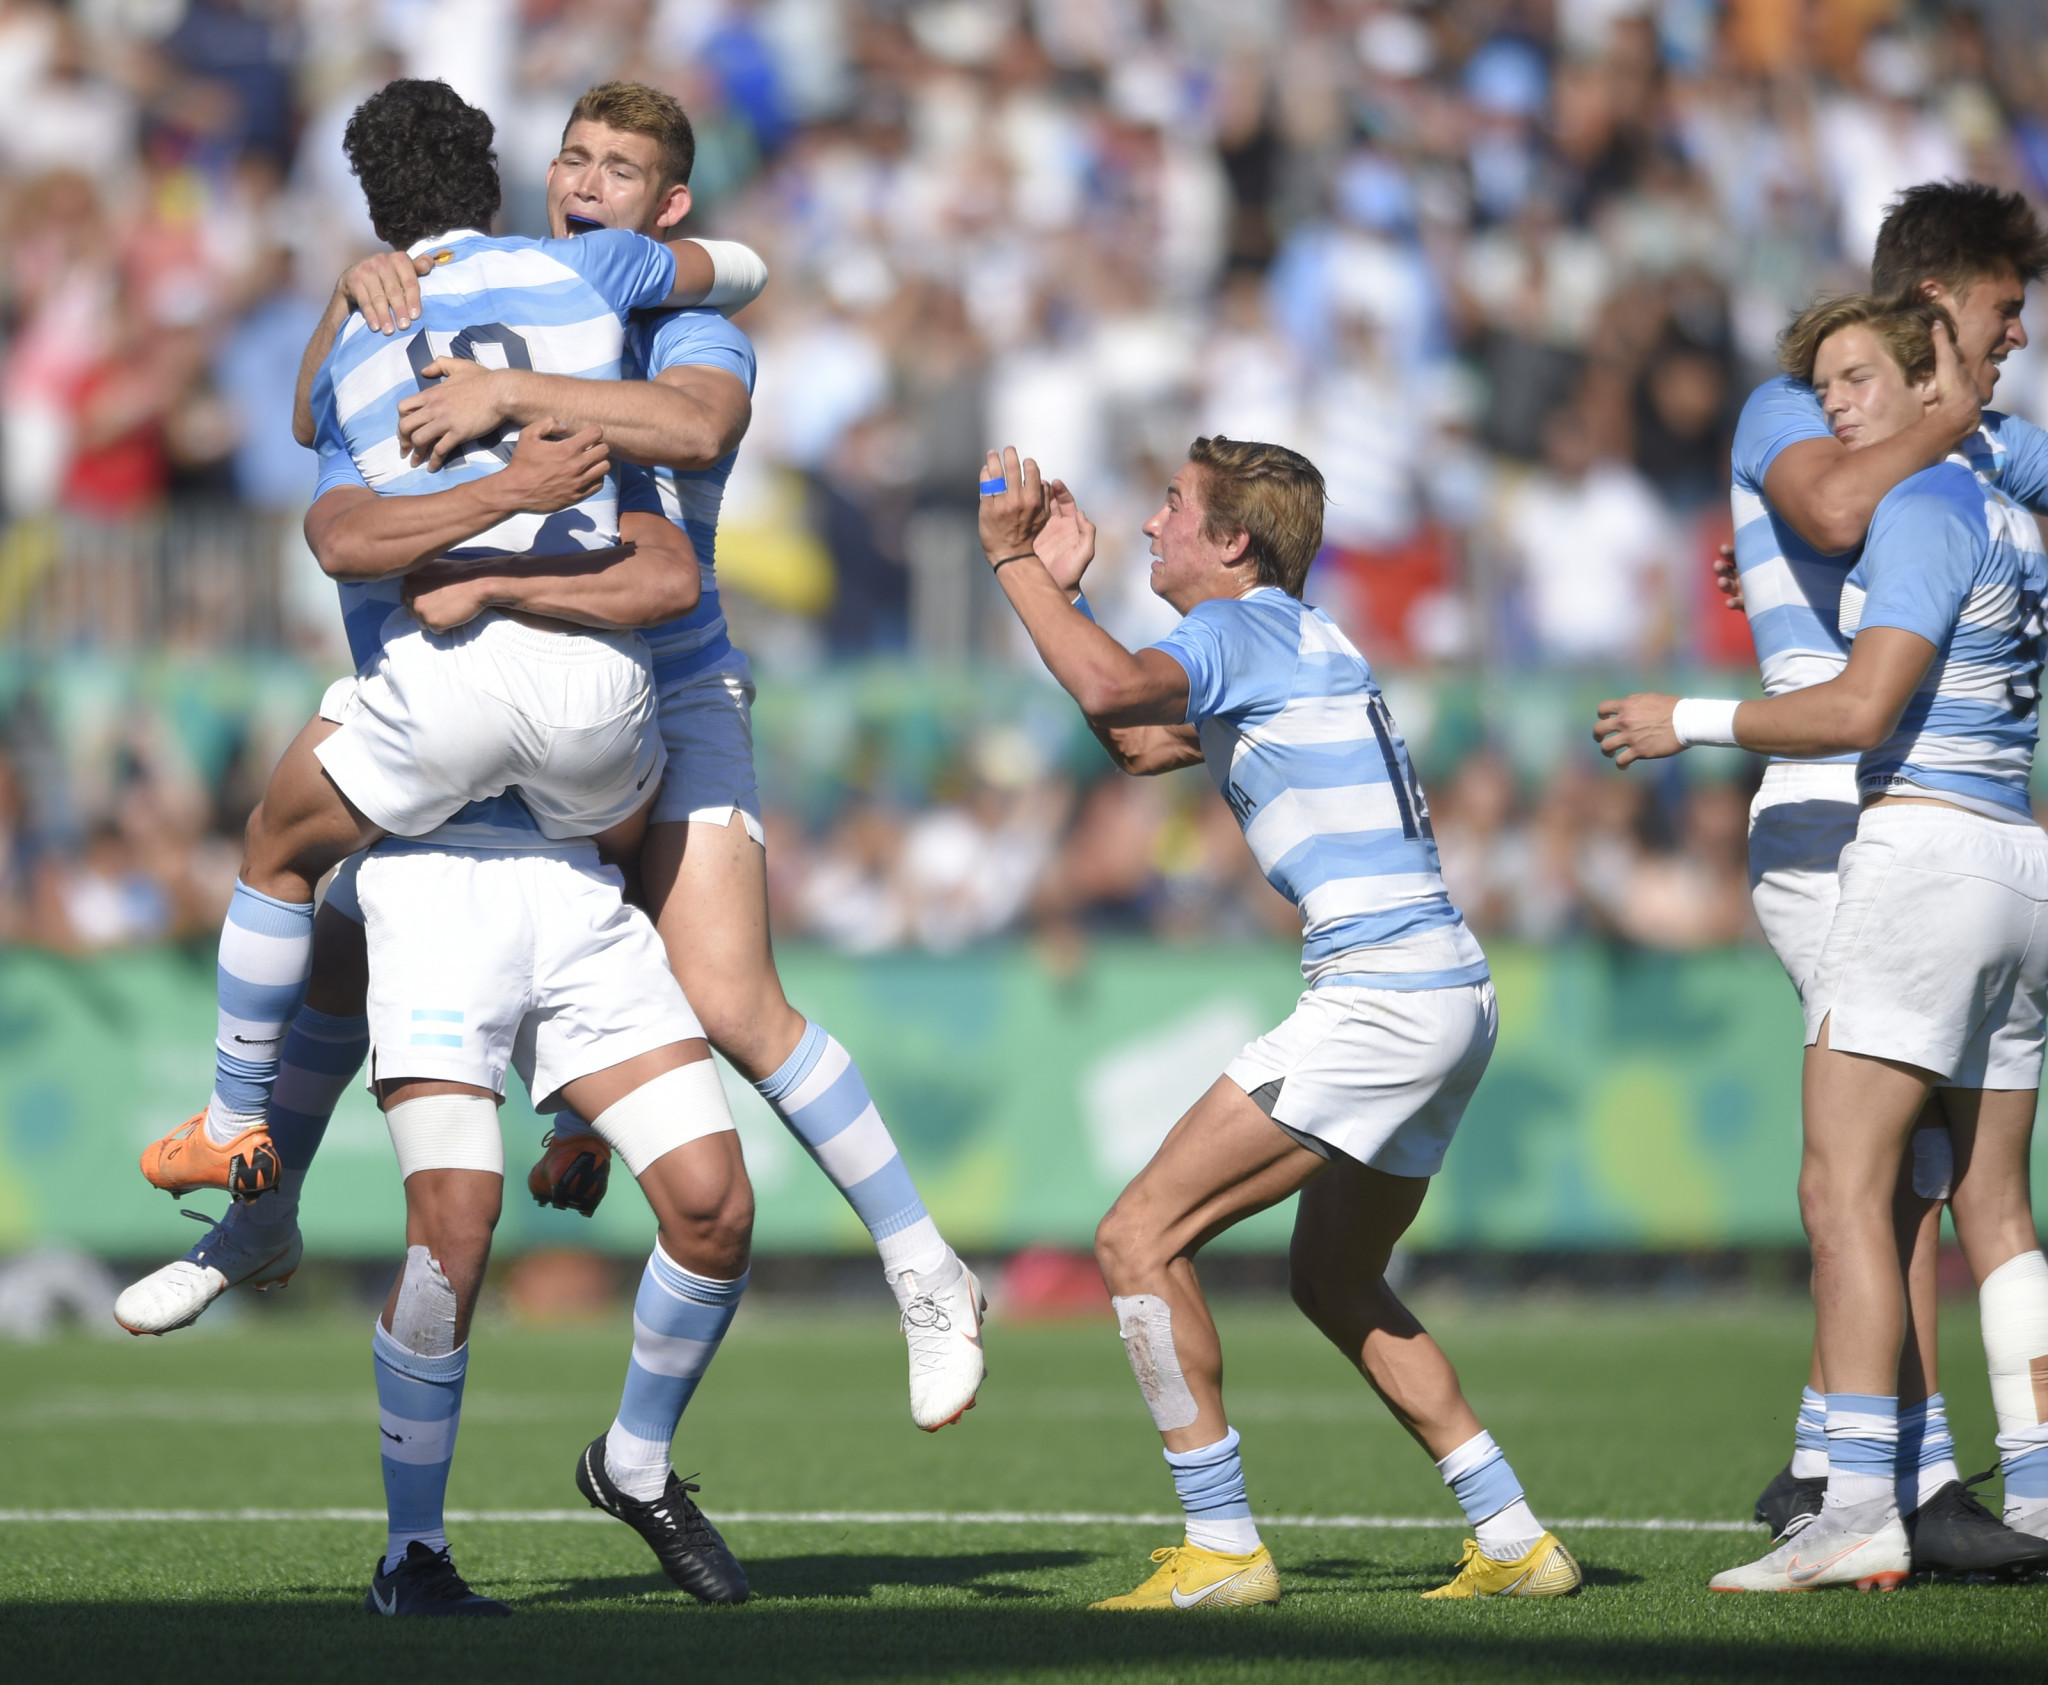 Buenos Aires 2018: Day nine of competition